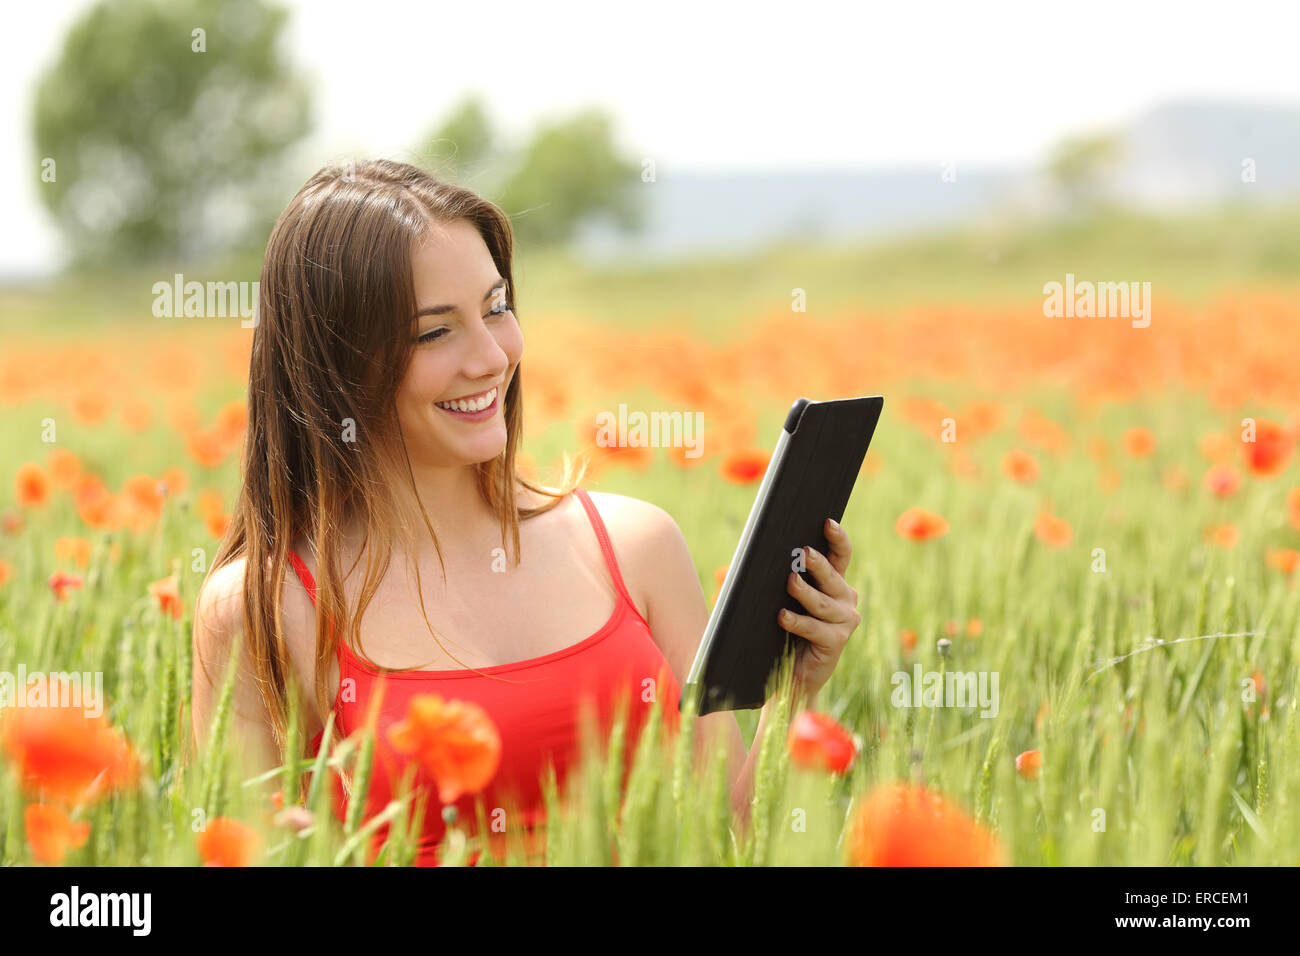 Woman reading an ebook or tablet in the middle of a field with red poppy flowers in summer - Stock Image